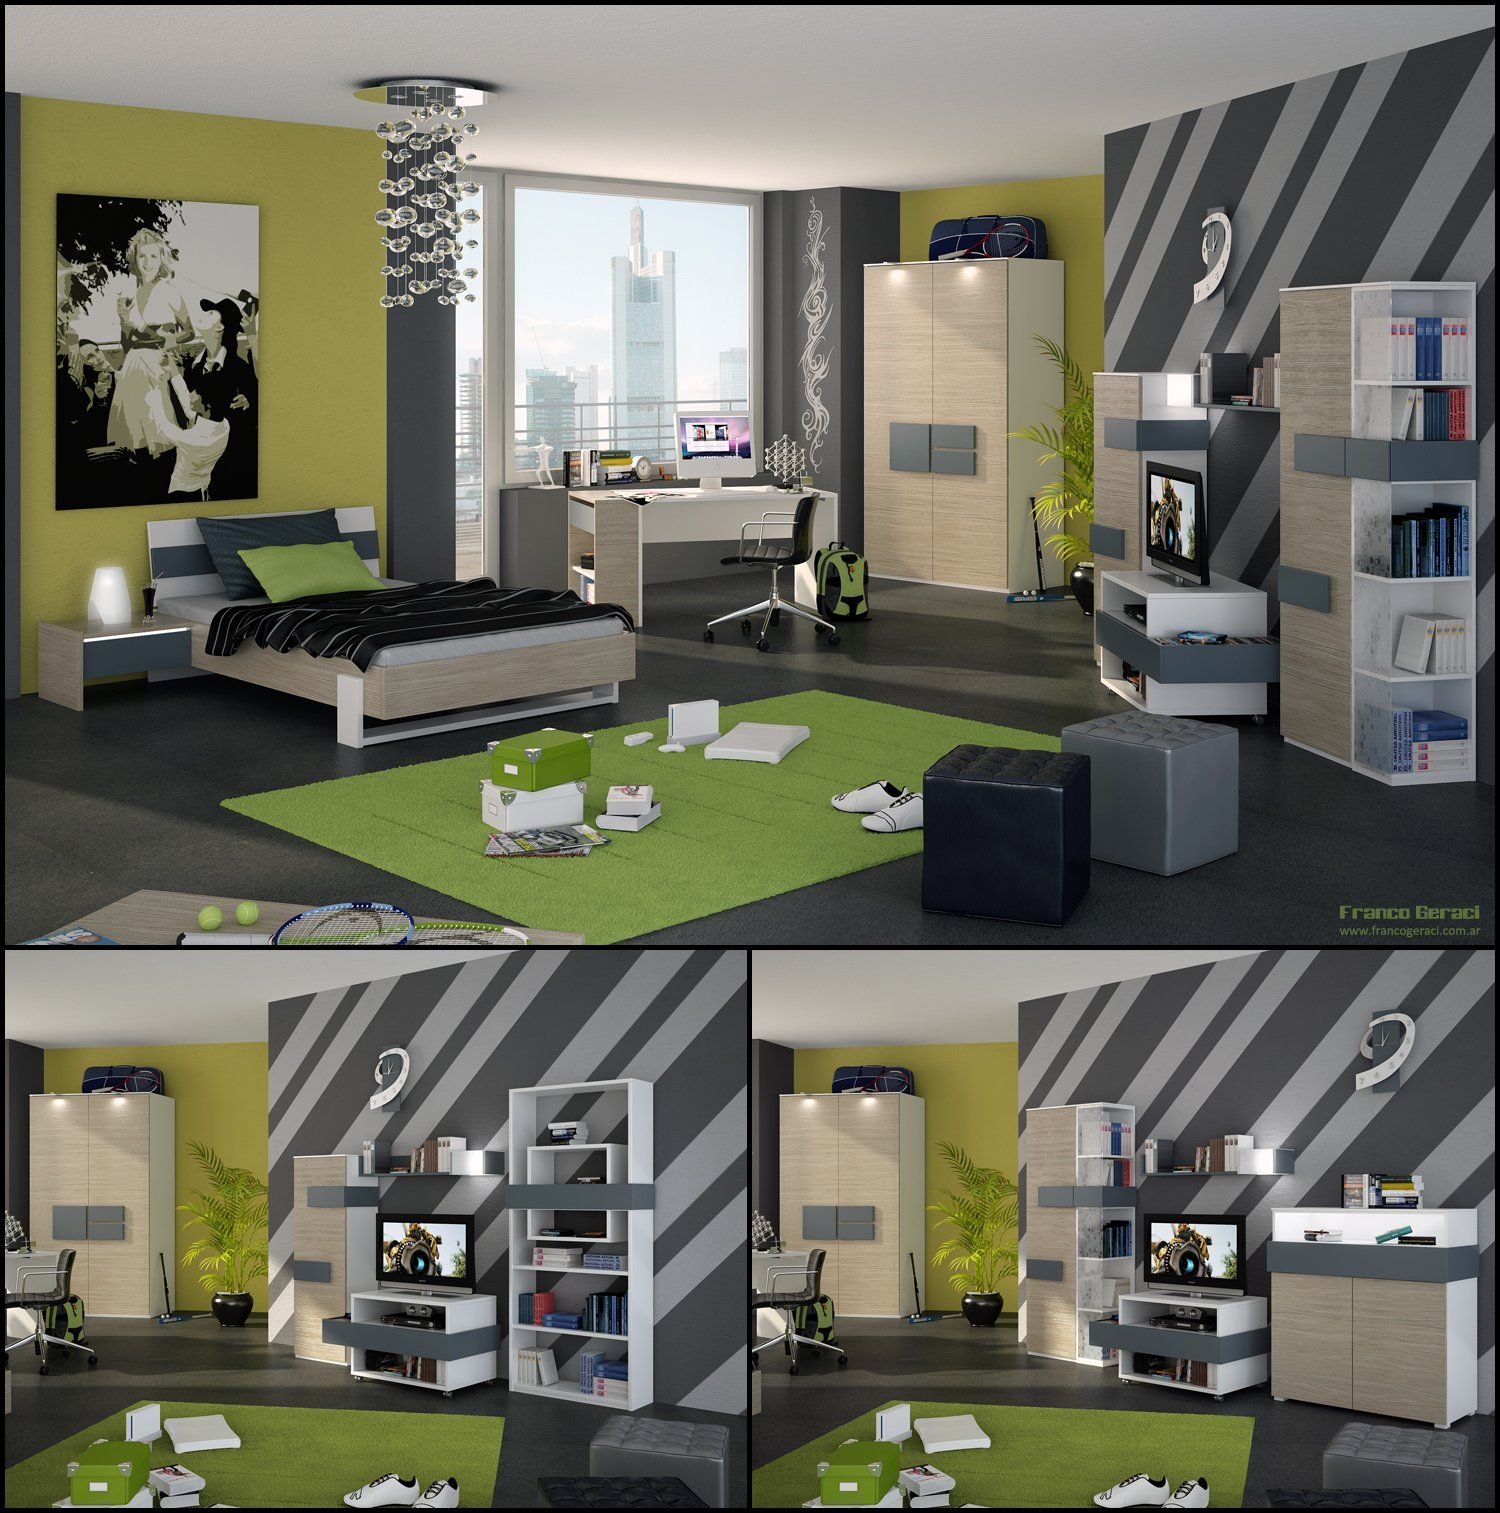 grey-bed-with-black-blanket-and-rectangular-green-rug-also-white